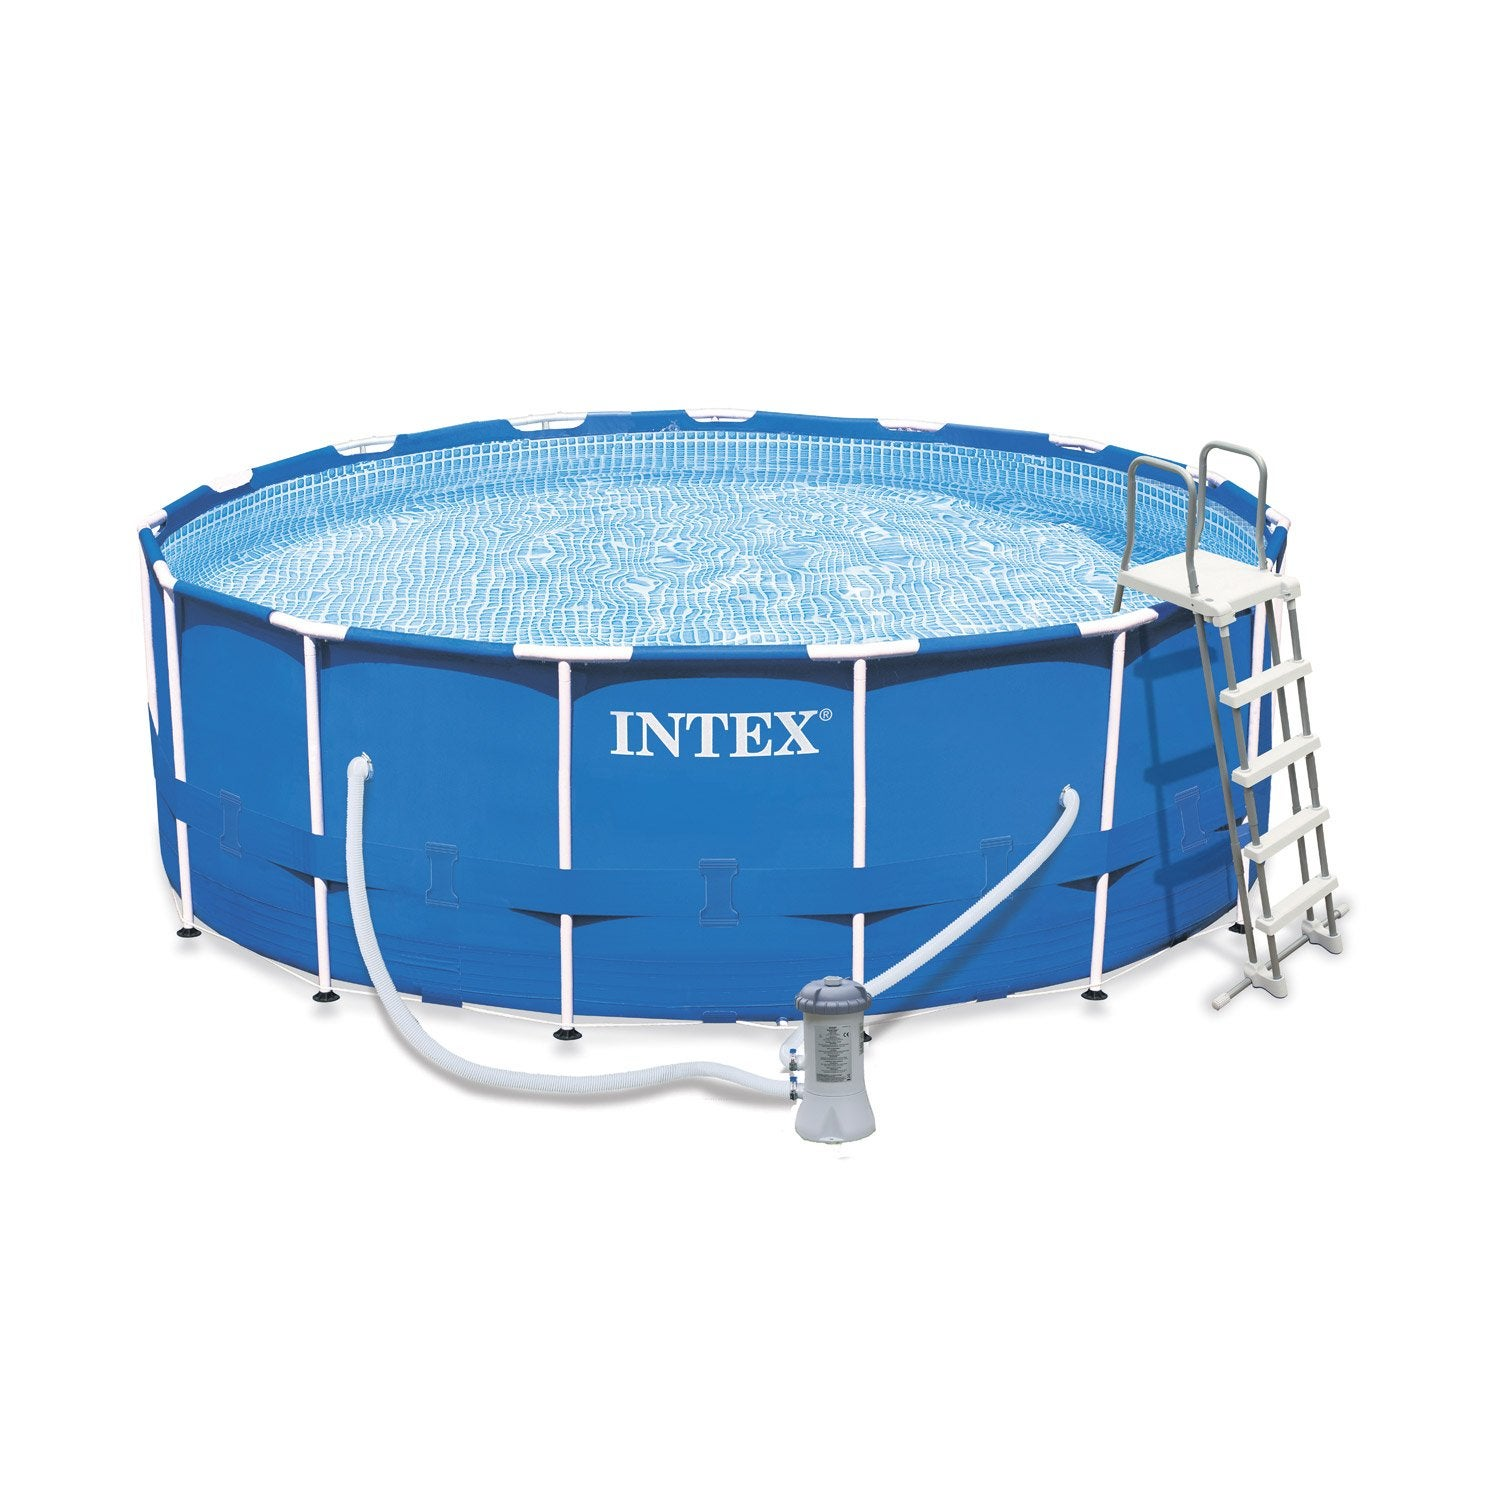 Piscine hors sol autoportante tubulaire metal frame intex for Robot piscine hors sol leroy merlin